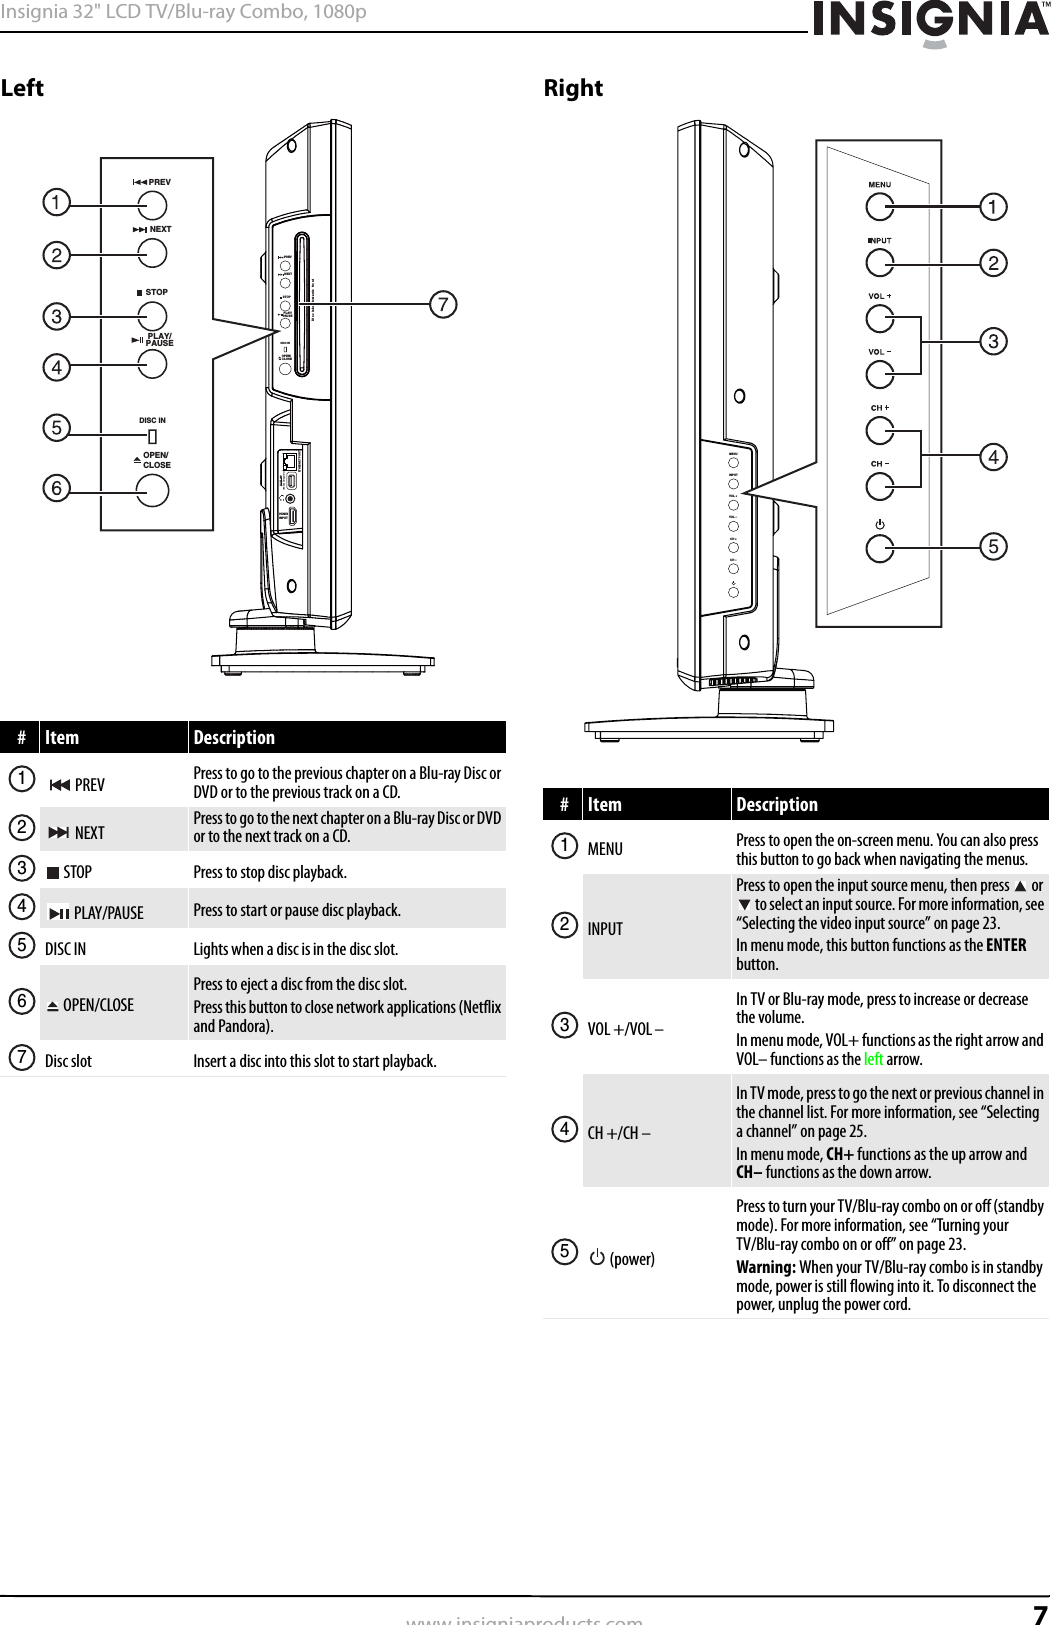 insignia tv wall mount 47-80 pdf instructions